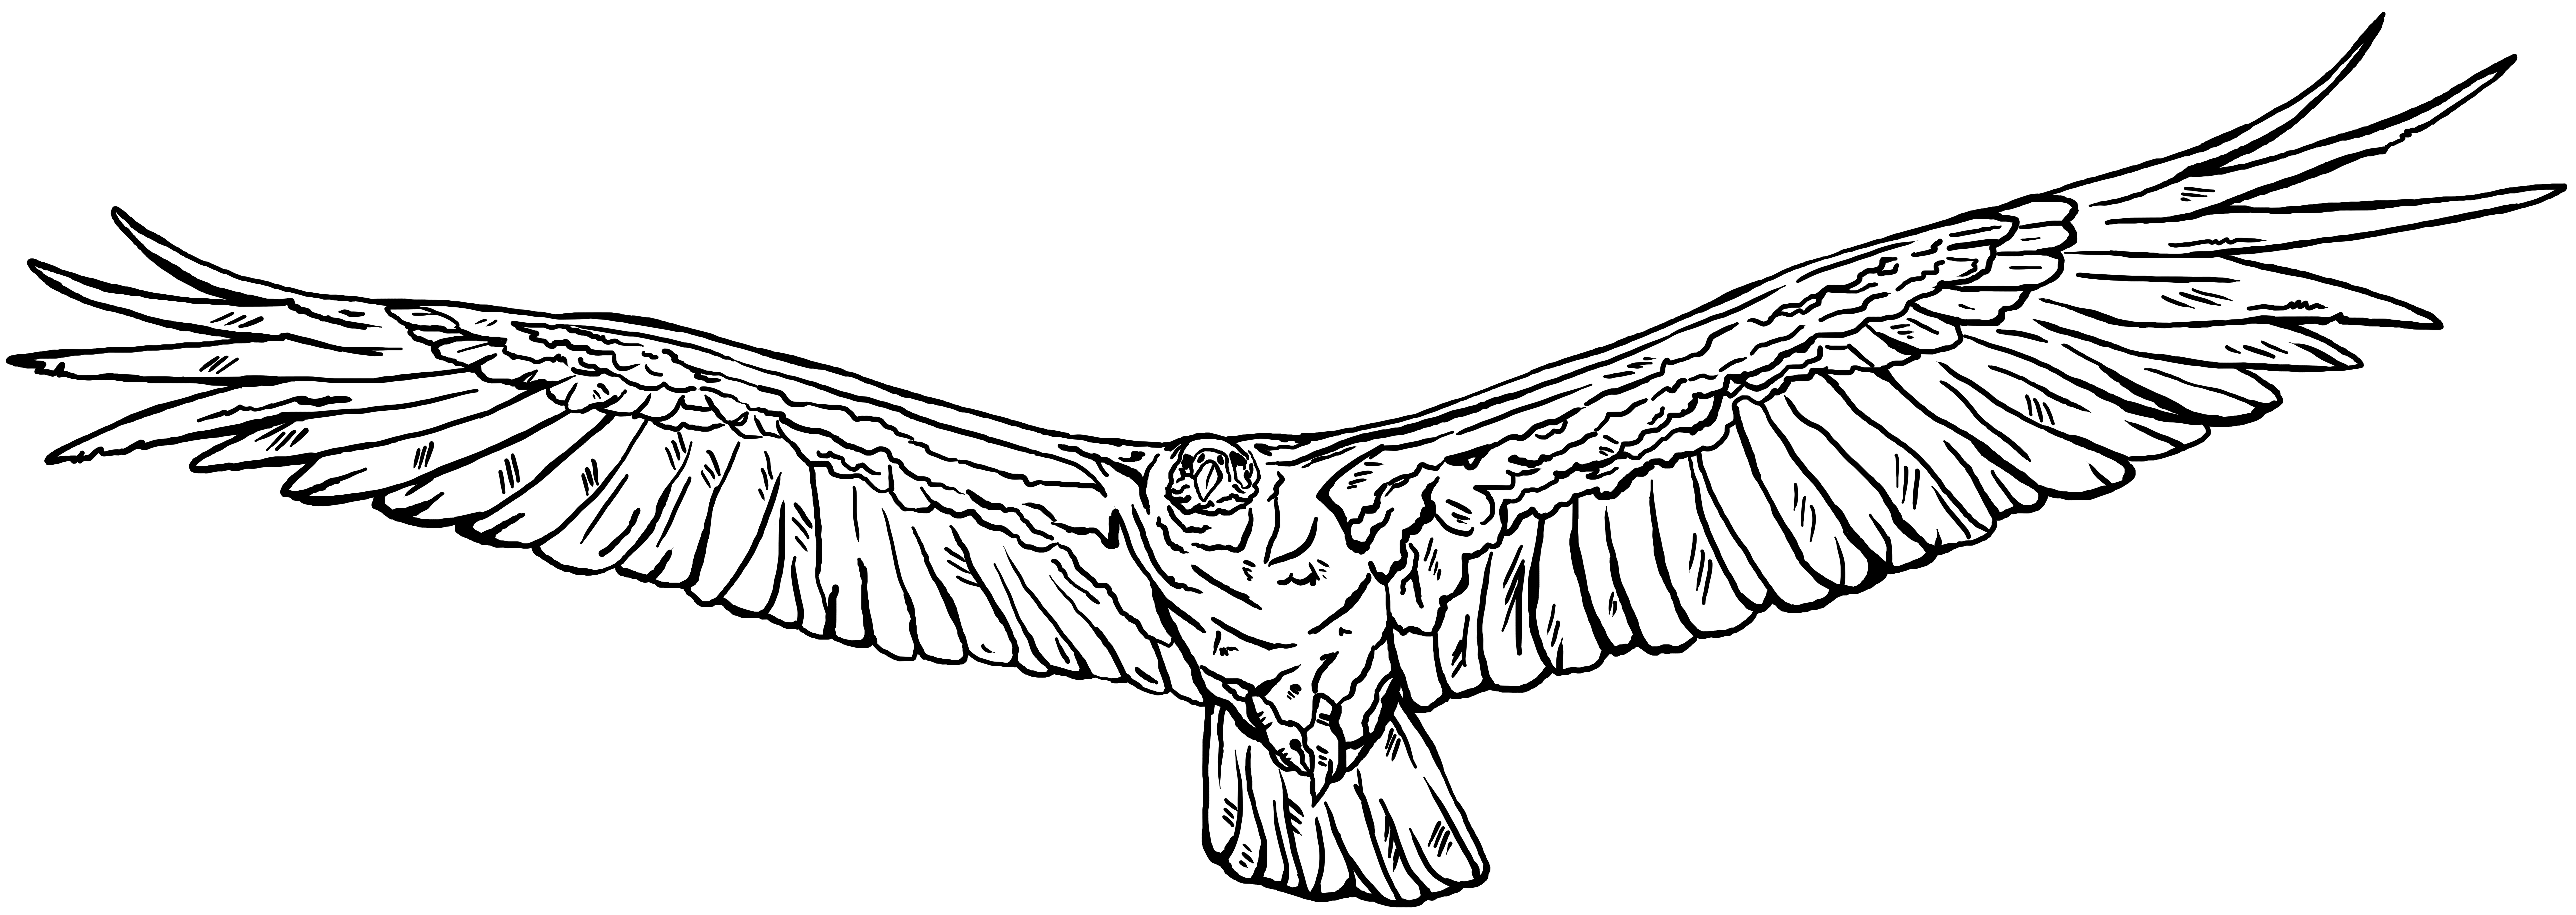 vulture coloring pages turkey vulture coloring download turkey vulture coloring pages coloring vulture